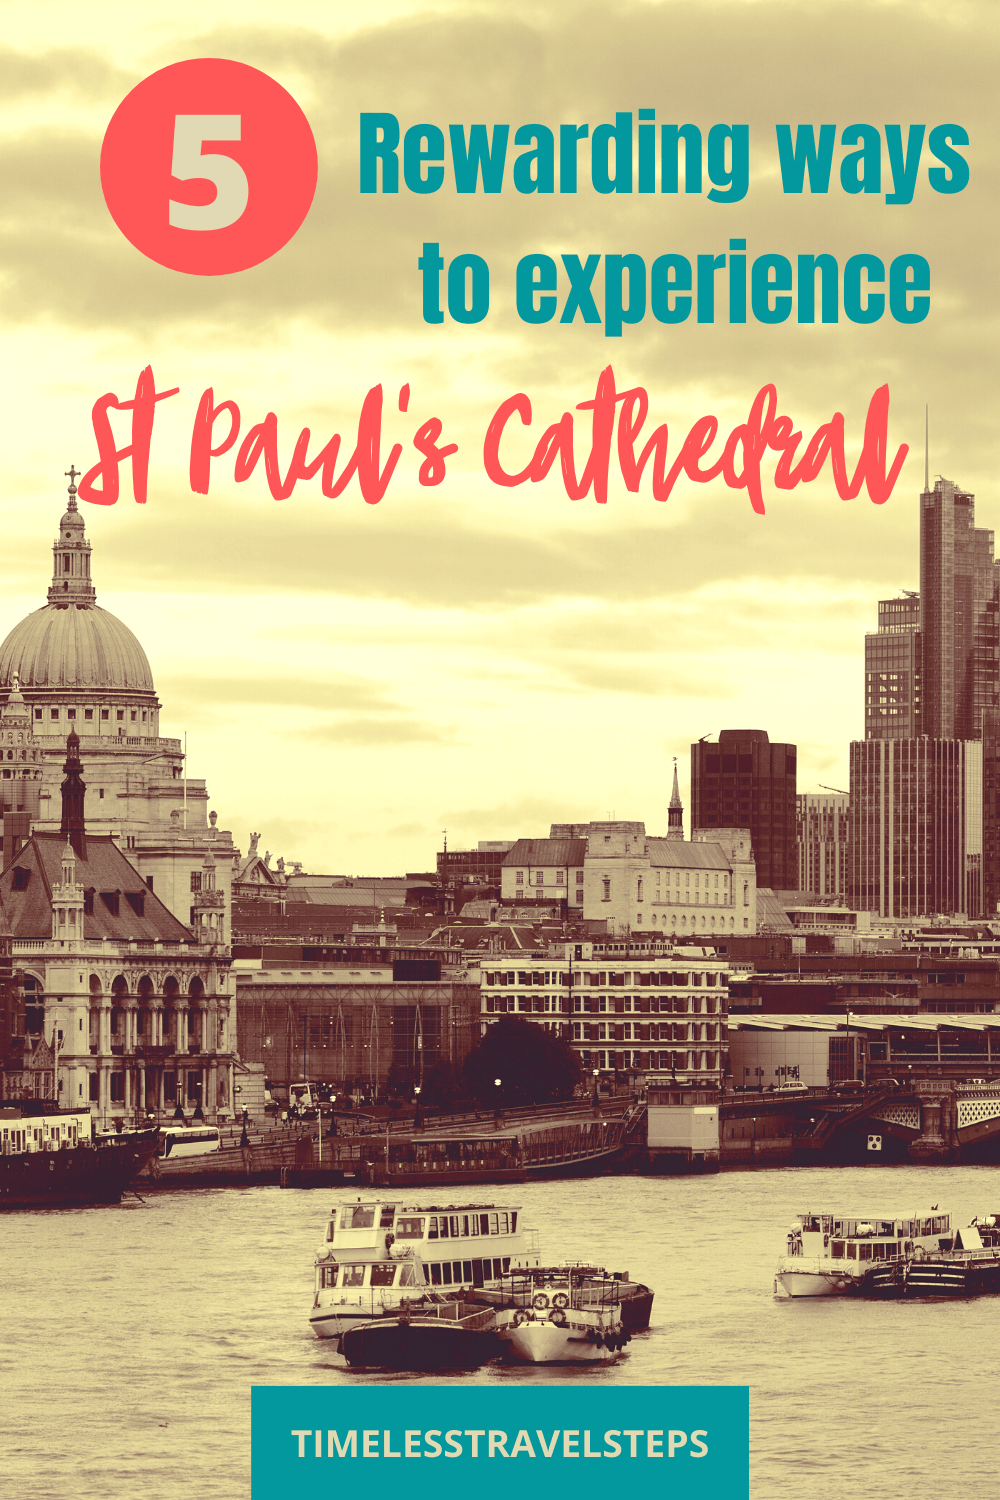 St Paul's Cathedral is one of the most visited attraction and it never fails to leave visitors in awe. Here are 5 rewarding ways to experience St Paul's Cathedral London via @GGeorgina_timelesstravelsteps/